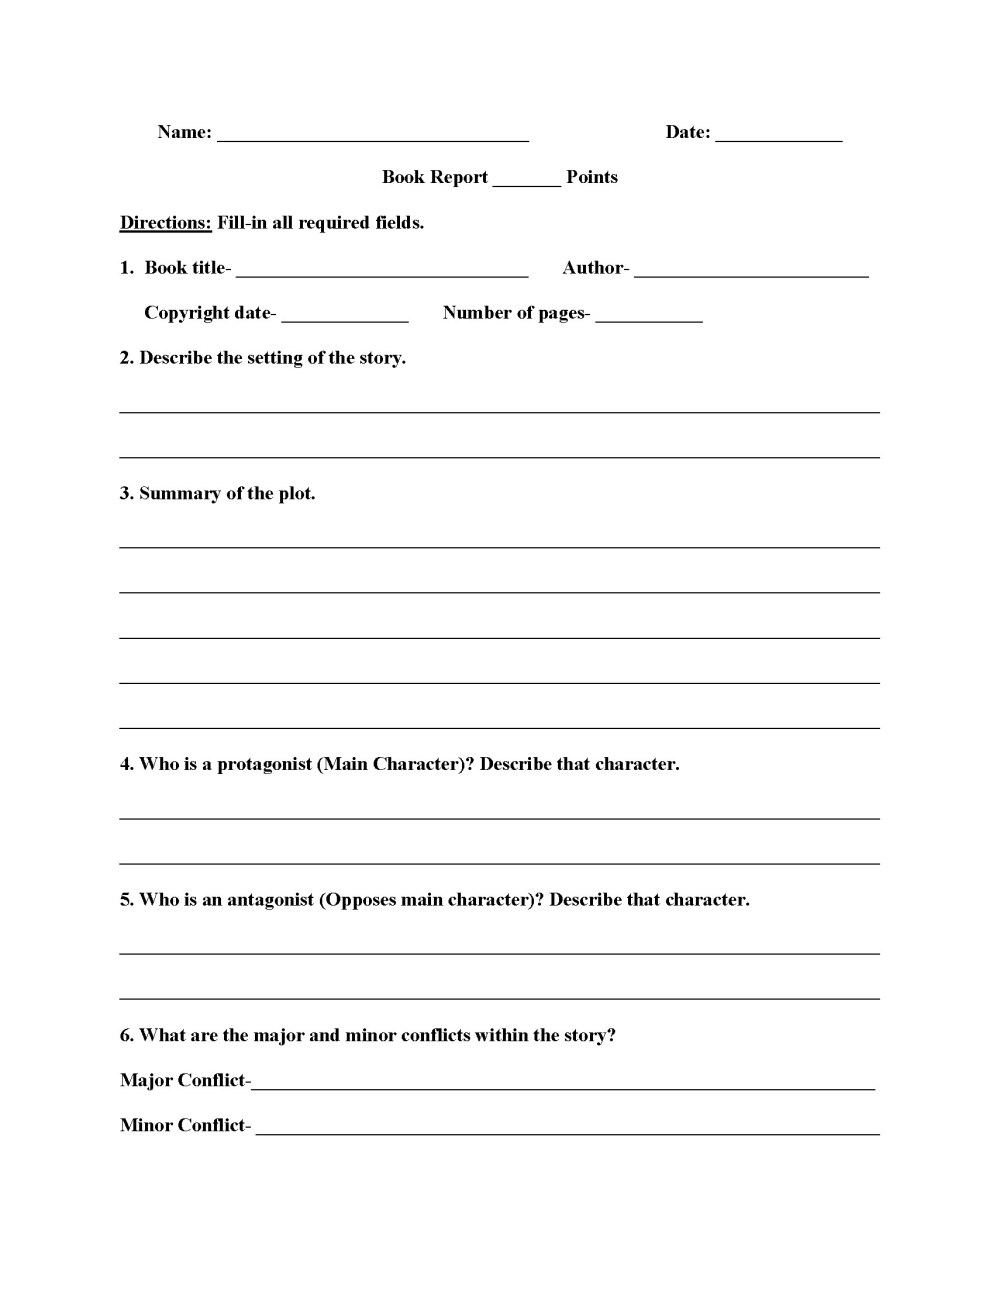 medium resolution of Pearson Worksheet For High School Health   Printable Worksheets and  Activities for Teachers